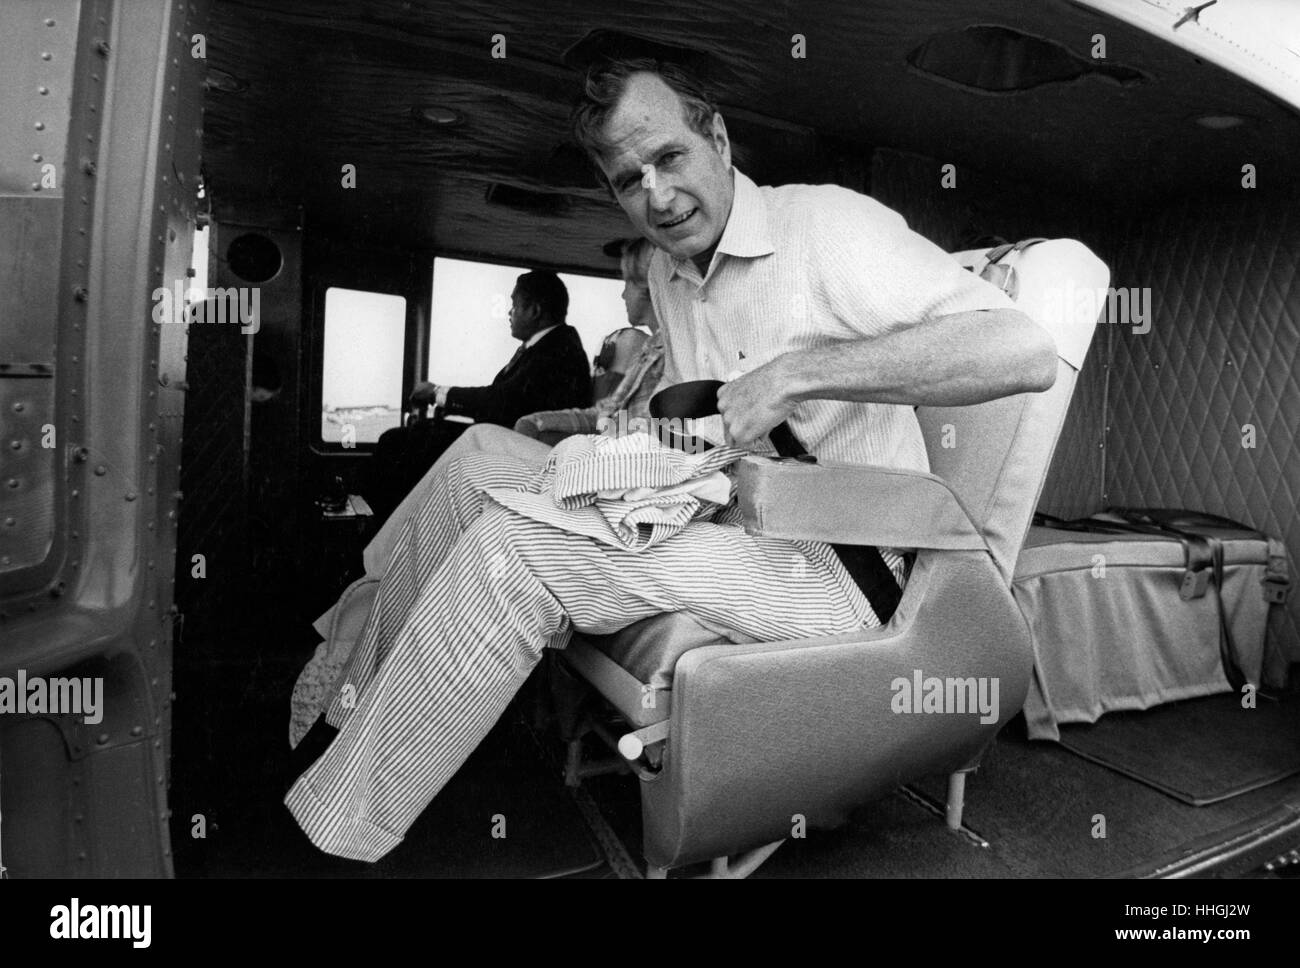 C.I.A. Director George H.W. Bush arrives in Plains, GA via a C.I.A. whitetop UH-1 helicopter to brief President - Stock Image